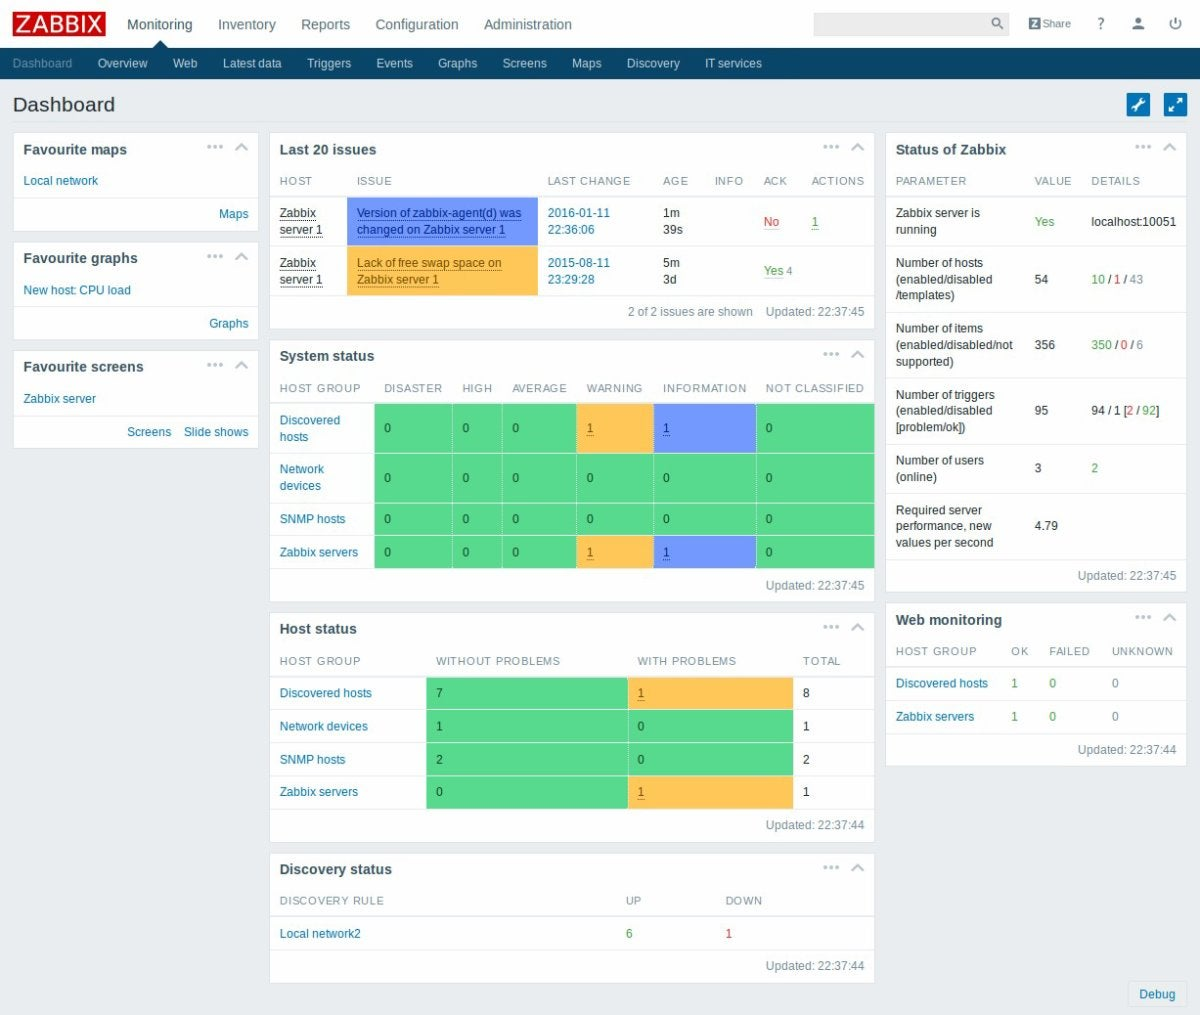 Zabbix > Dashboard